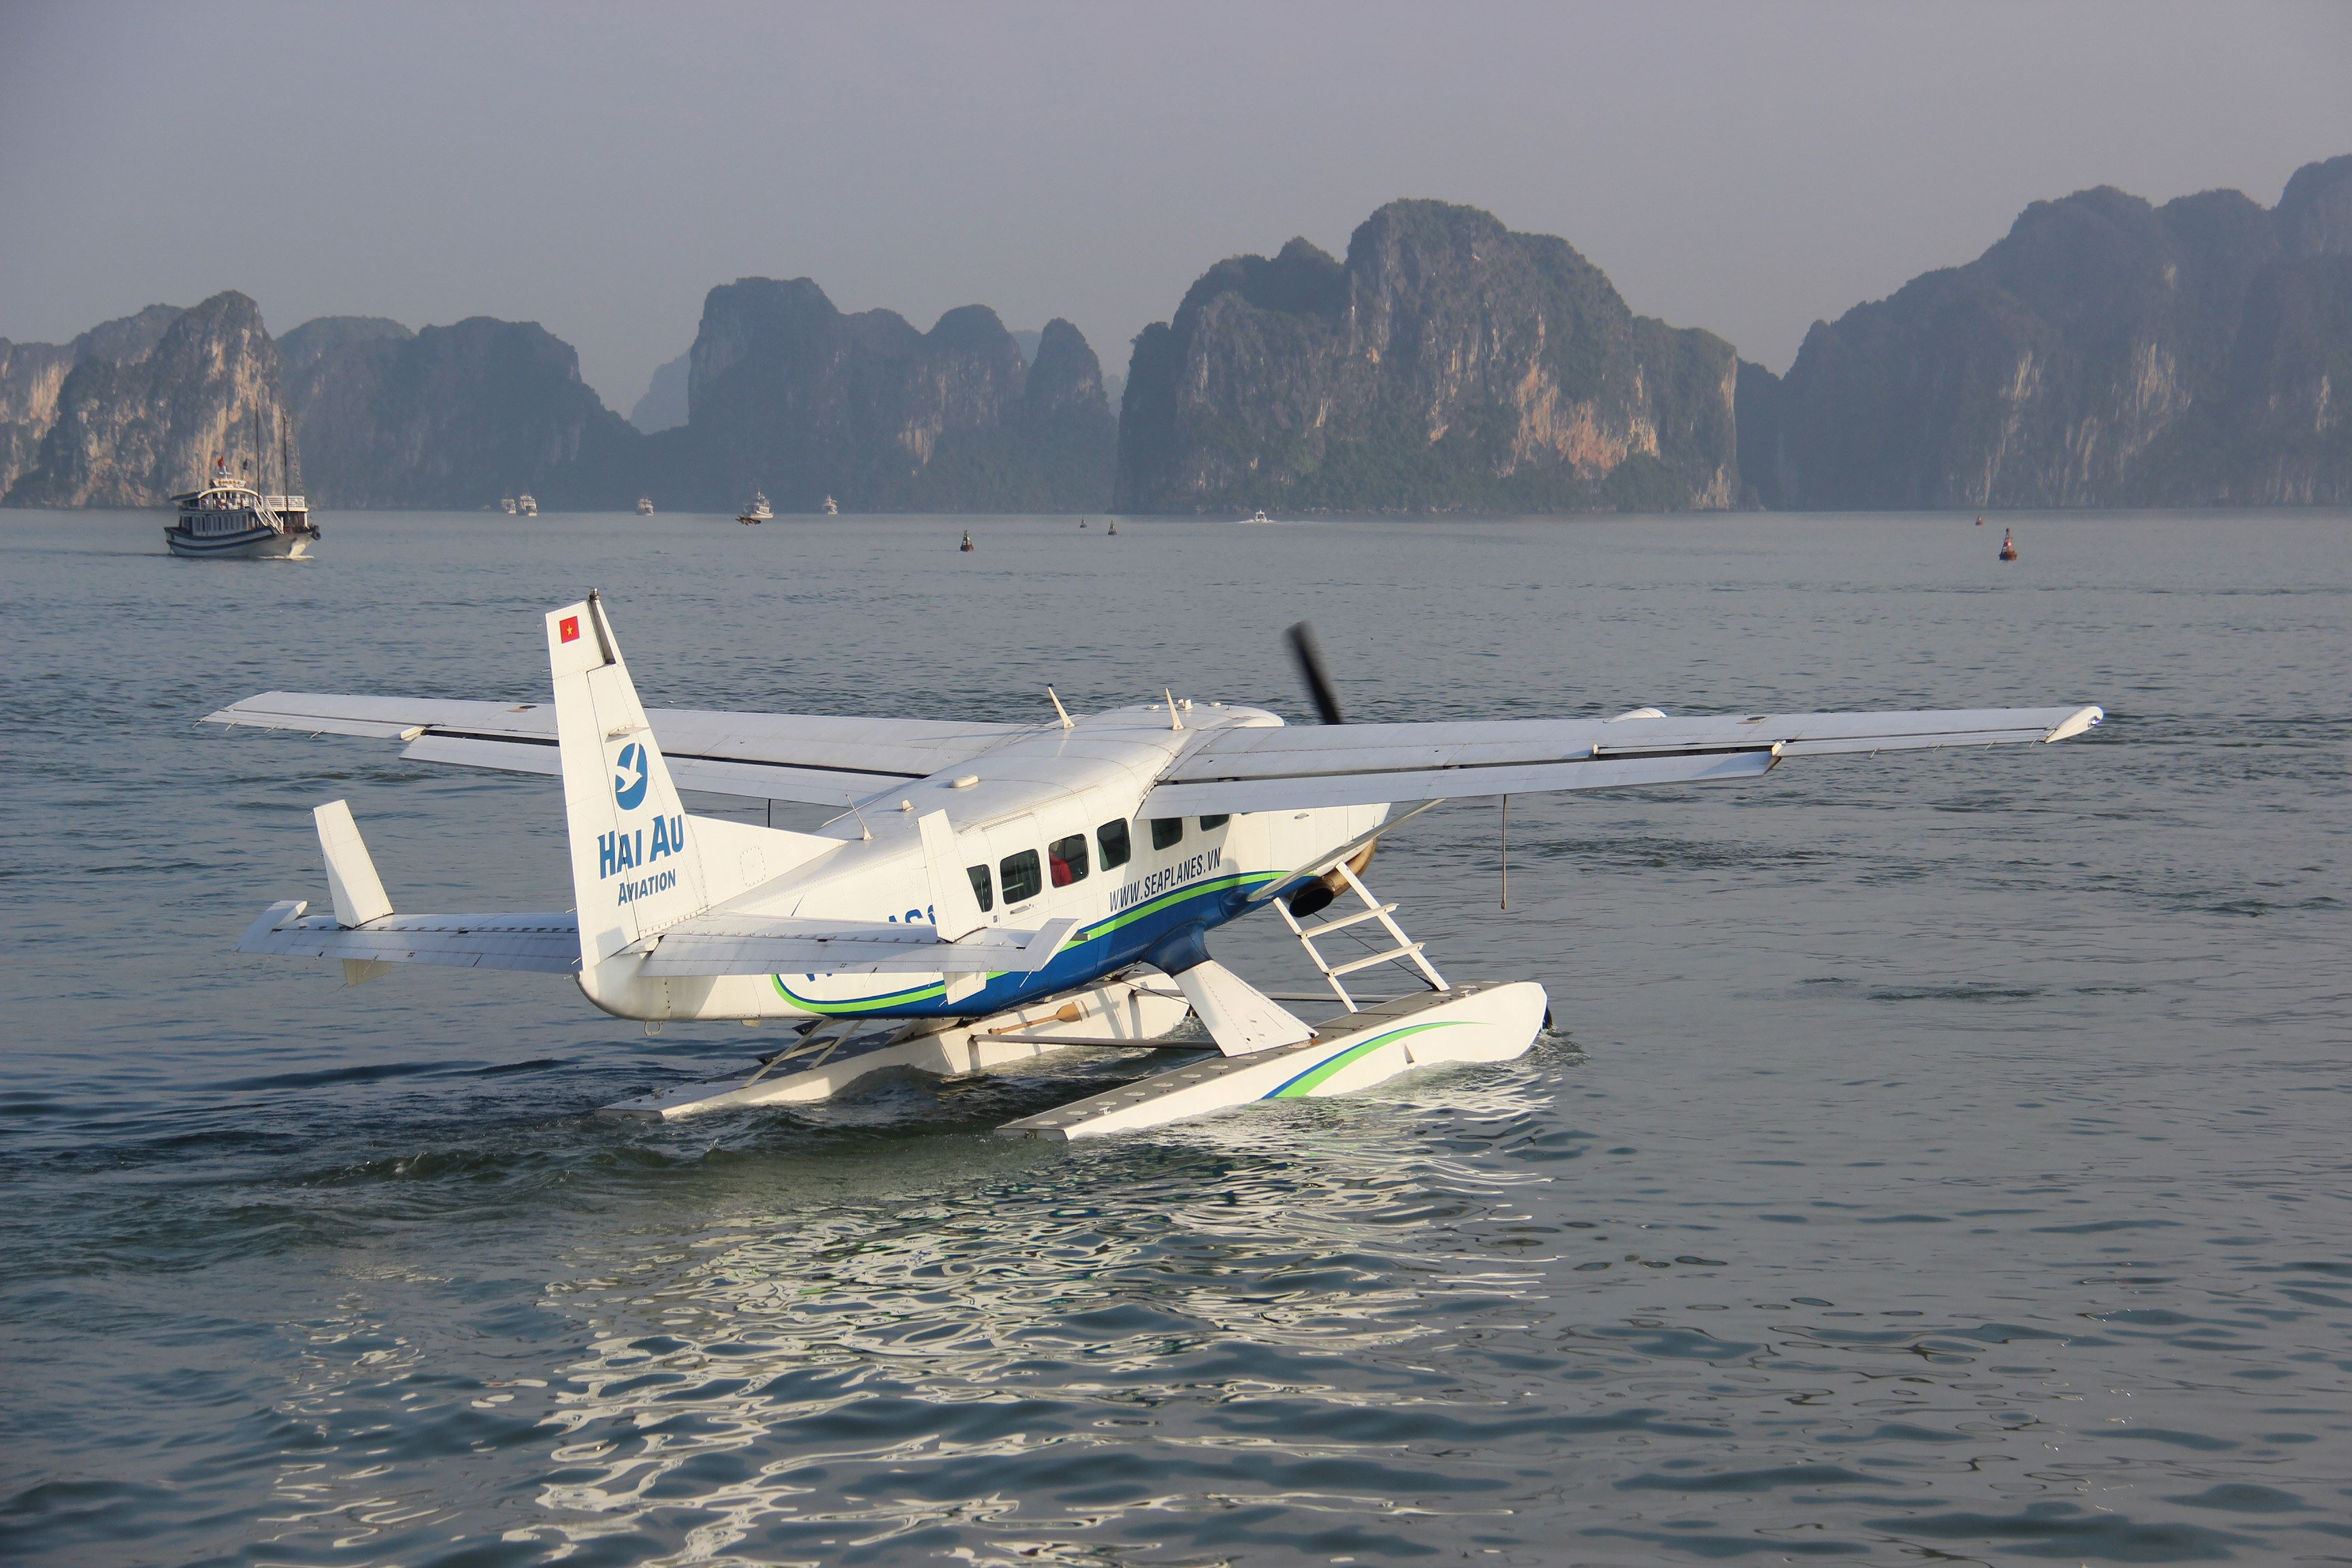 Halong by Seaplane